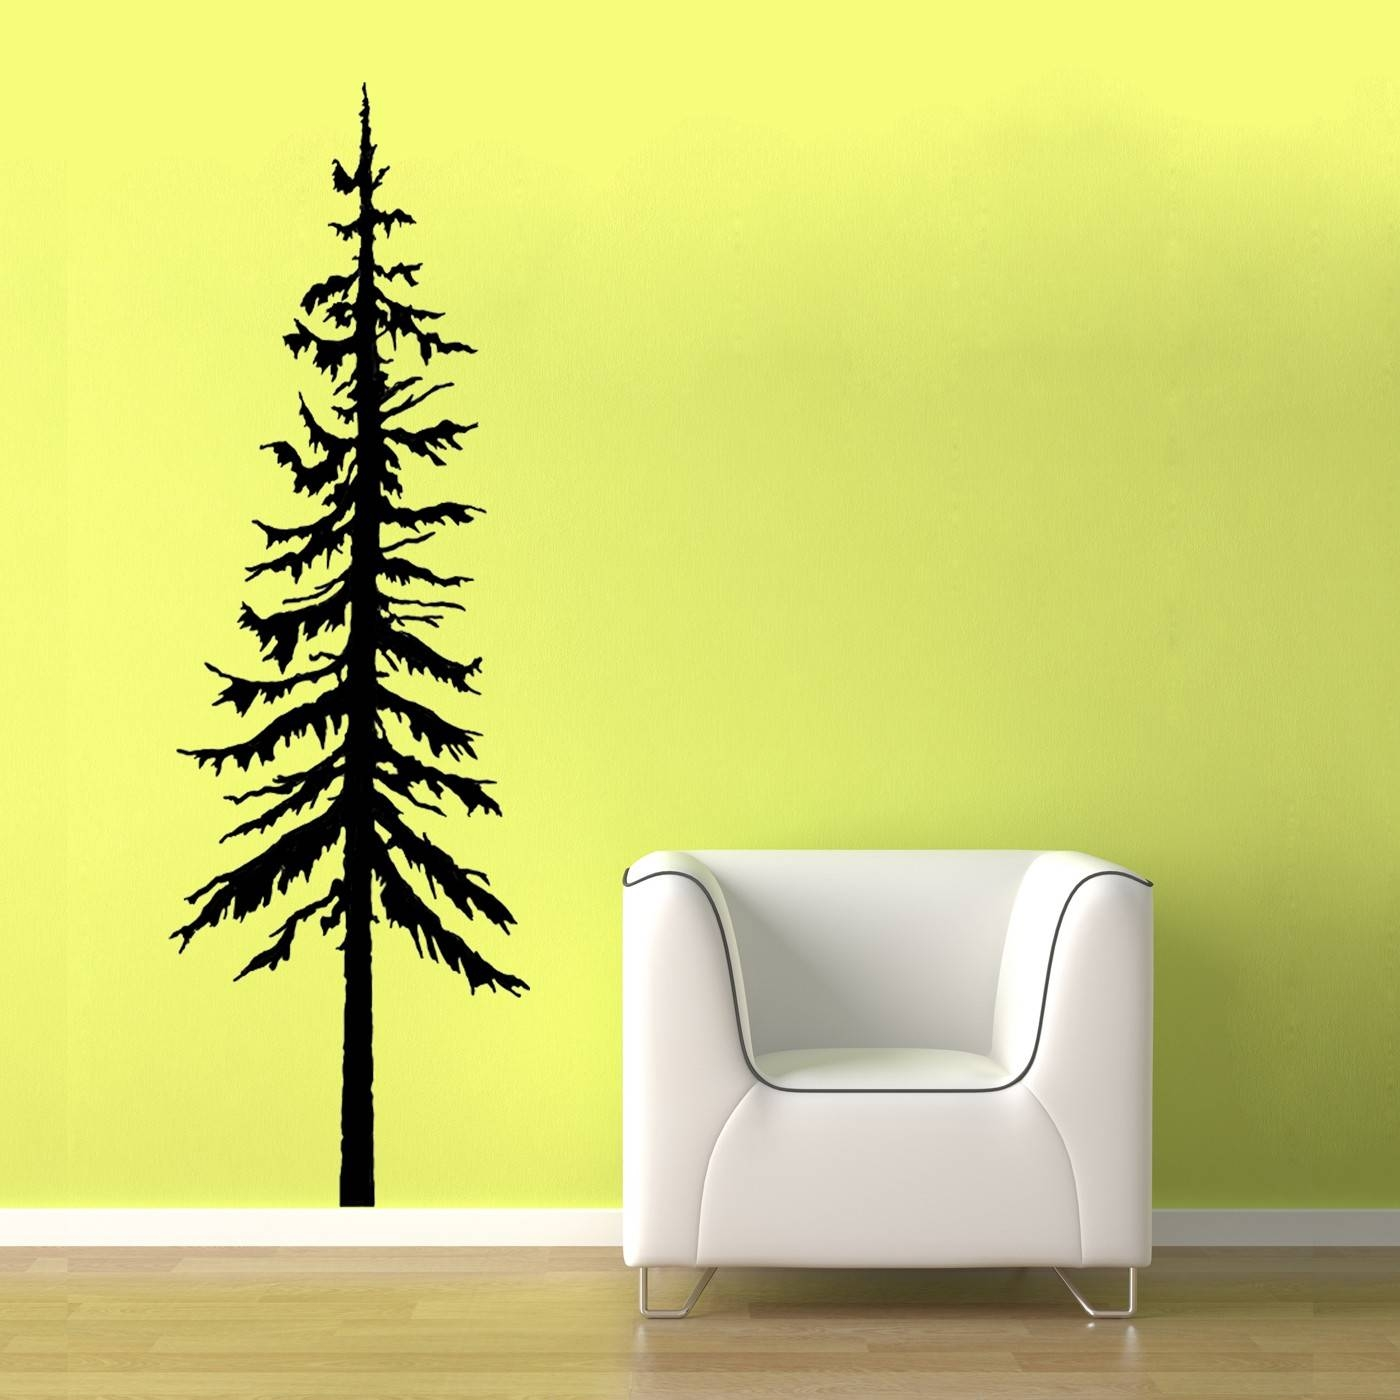 Pine Tree Decal Vinyl Wall Graphic Pine Tree Decal Pine Intended For Current Pine Tree Wall Art (View 9 of 30)